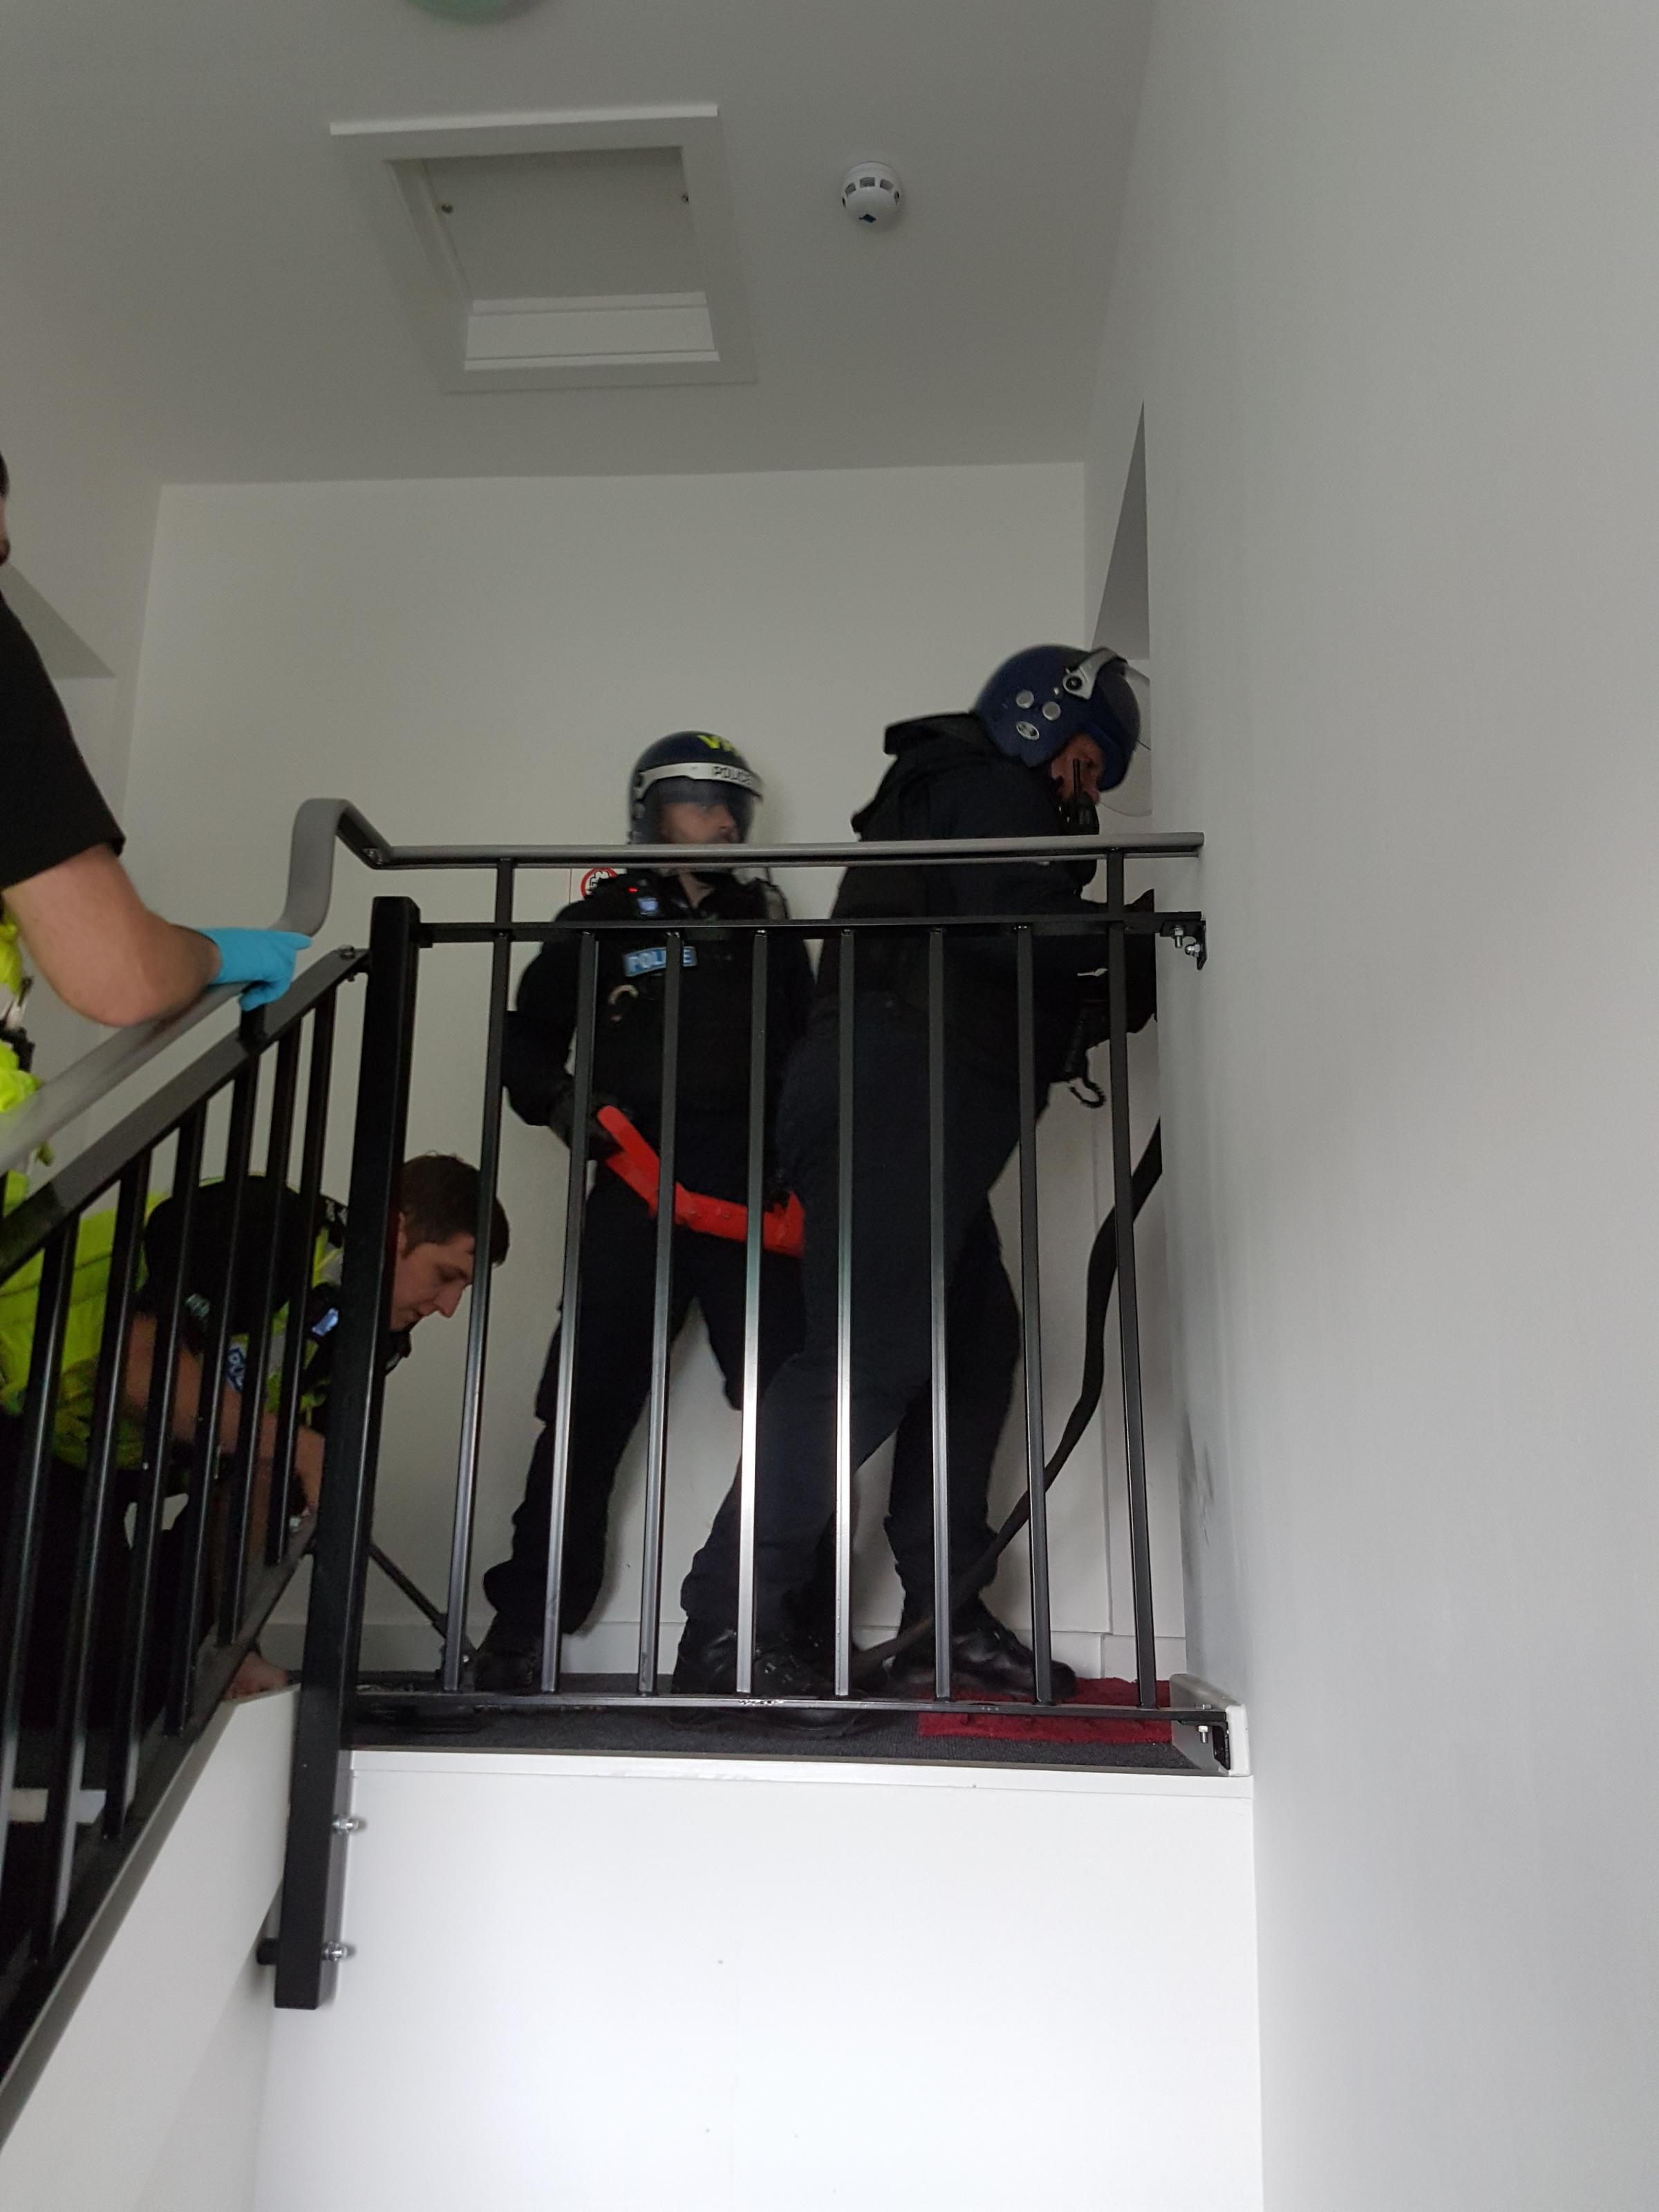 A drugs raid held in Hertfordshire